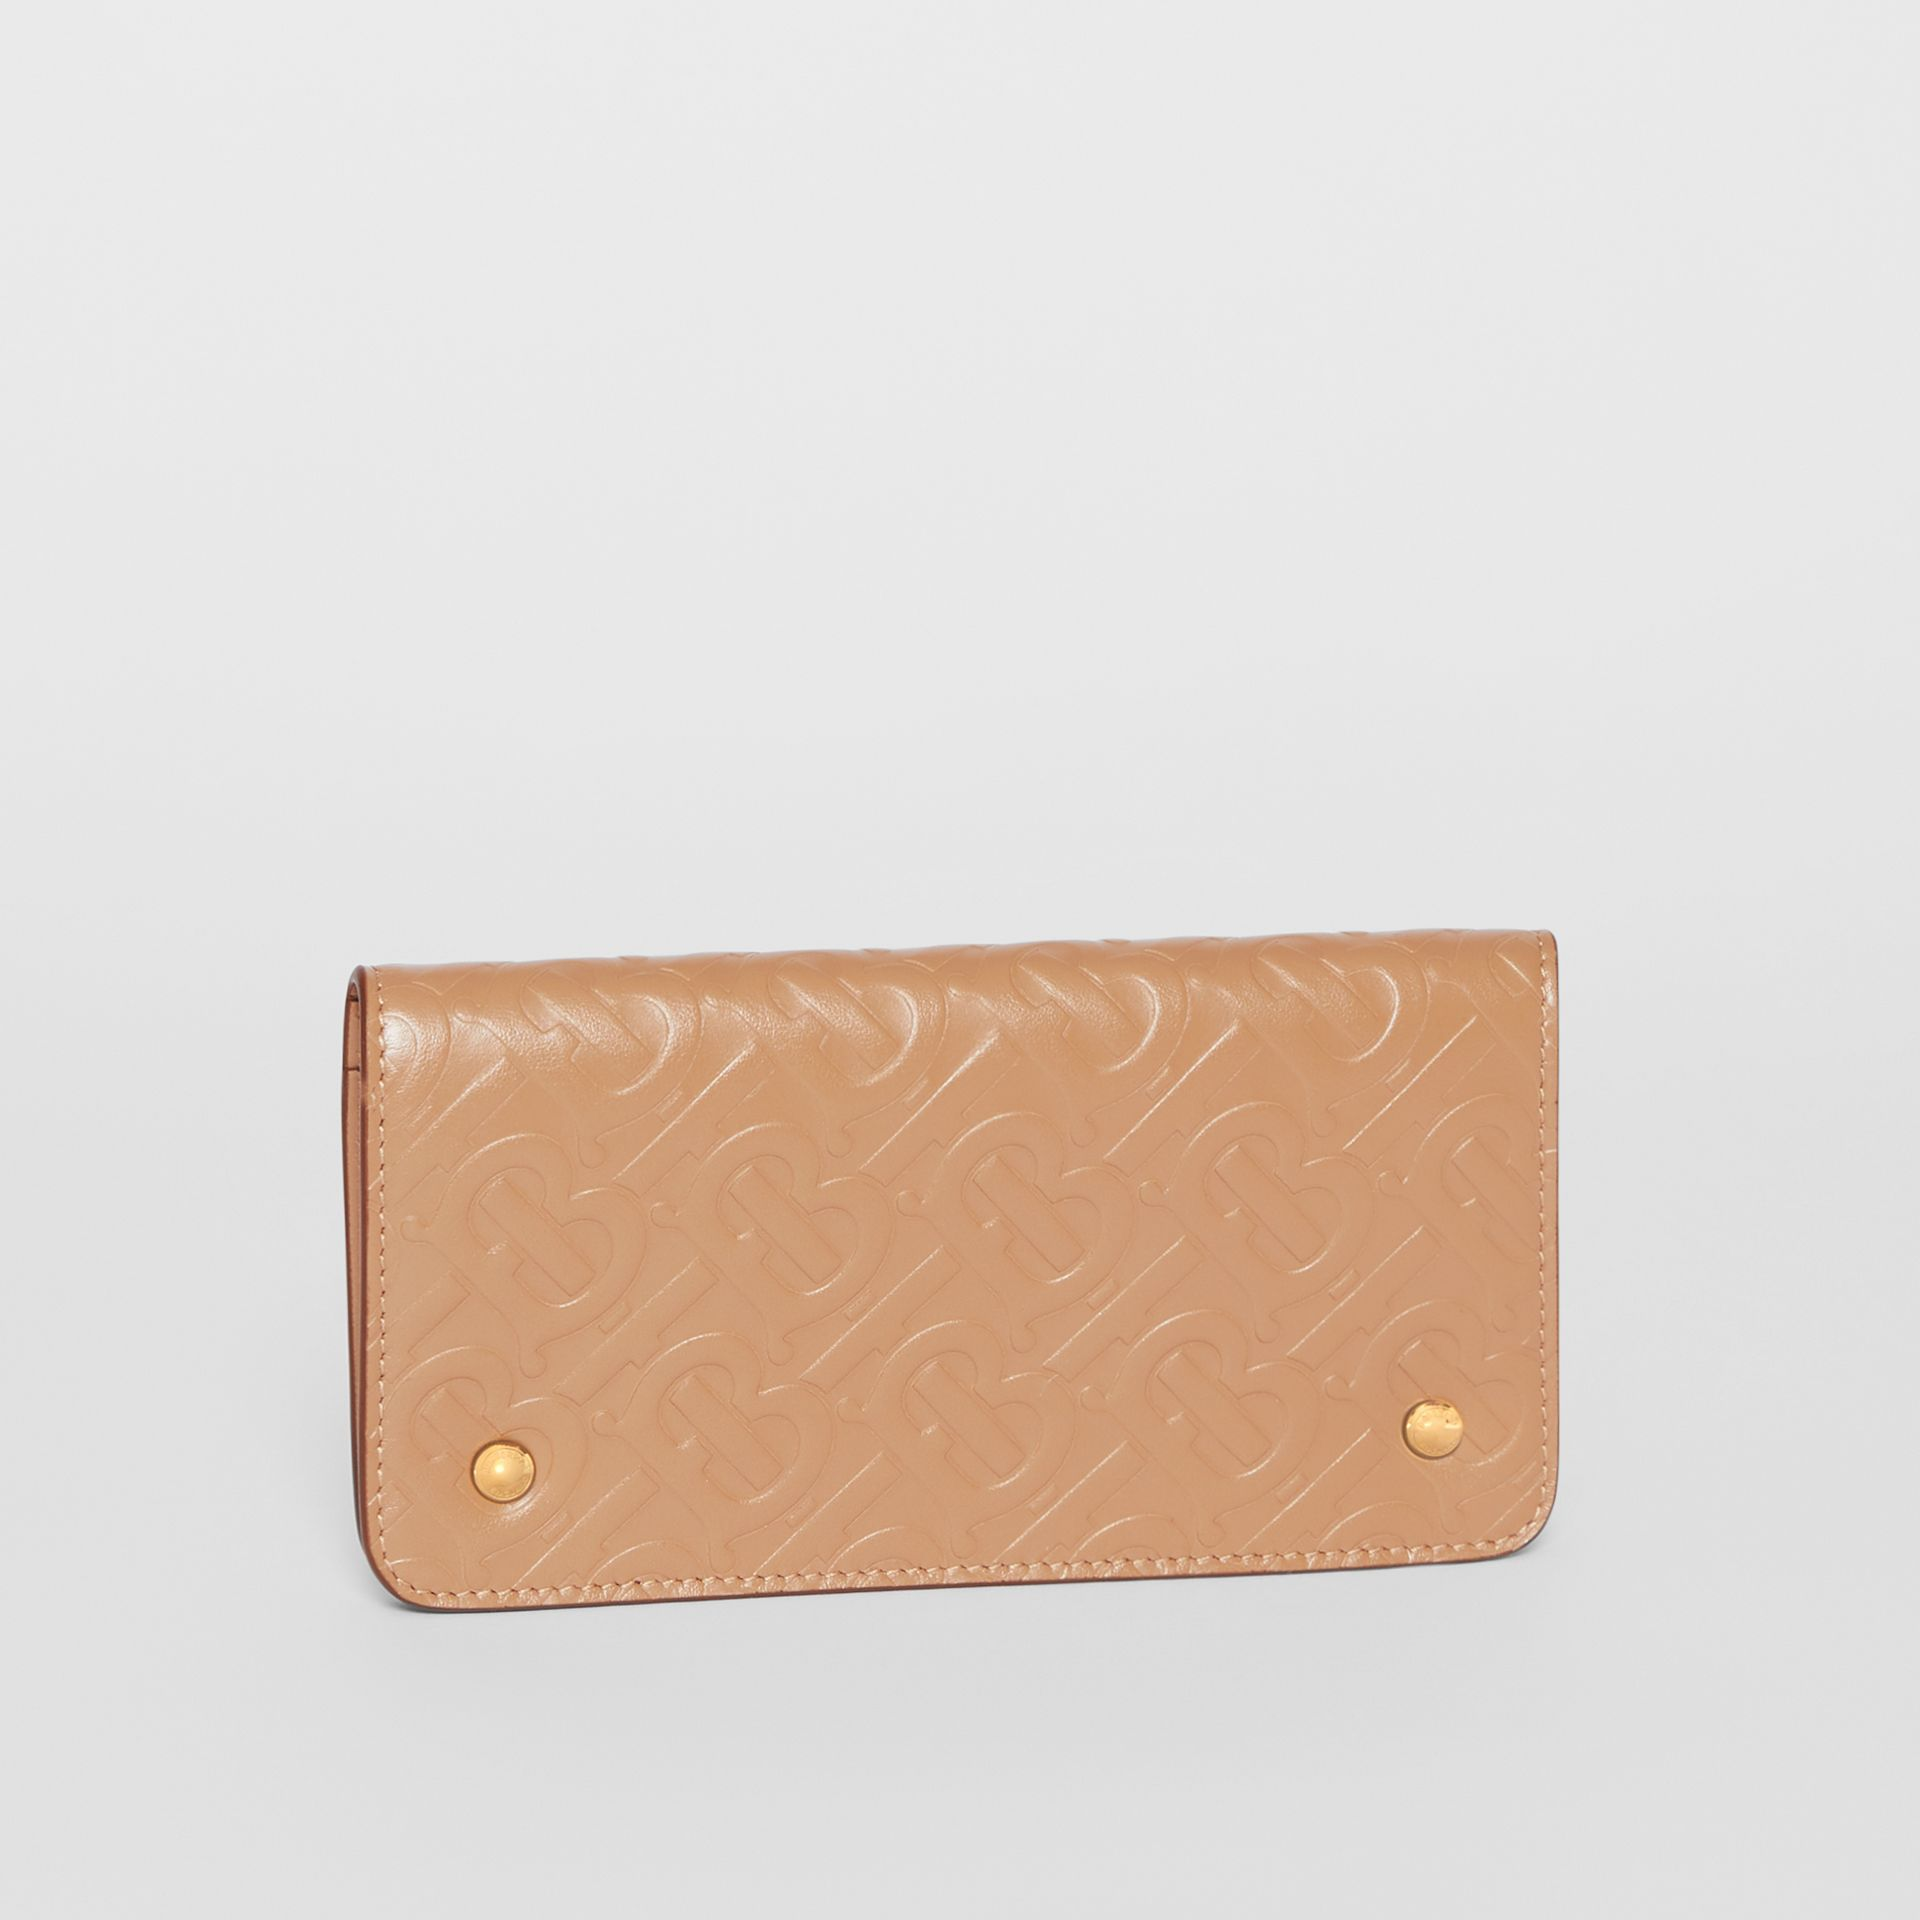 Monogram Leather Phone Wallet in Light Camel - Women | Burberry United Kingdom - gallery image 4